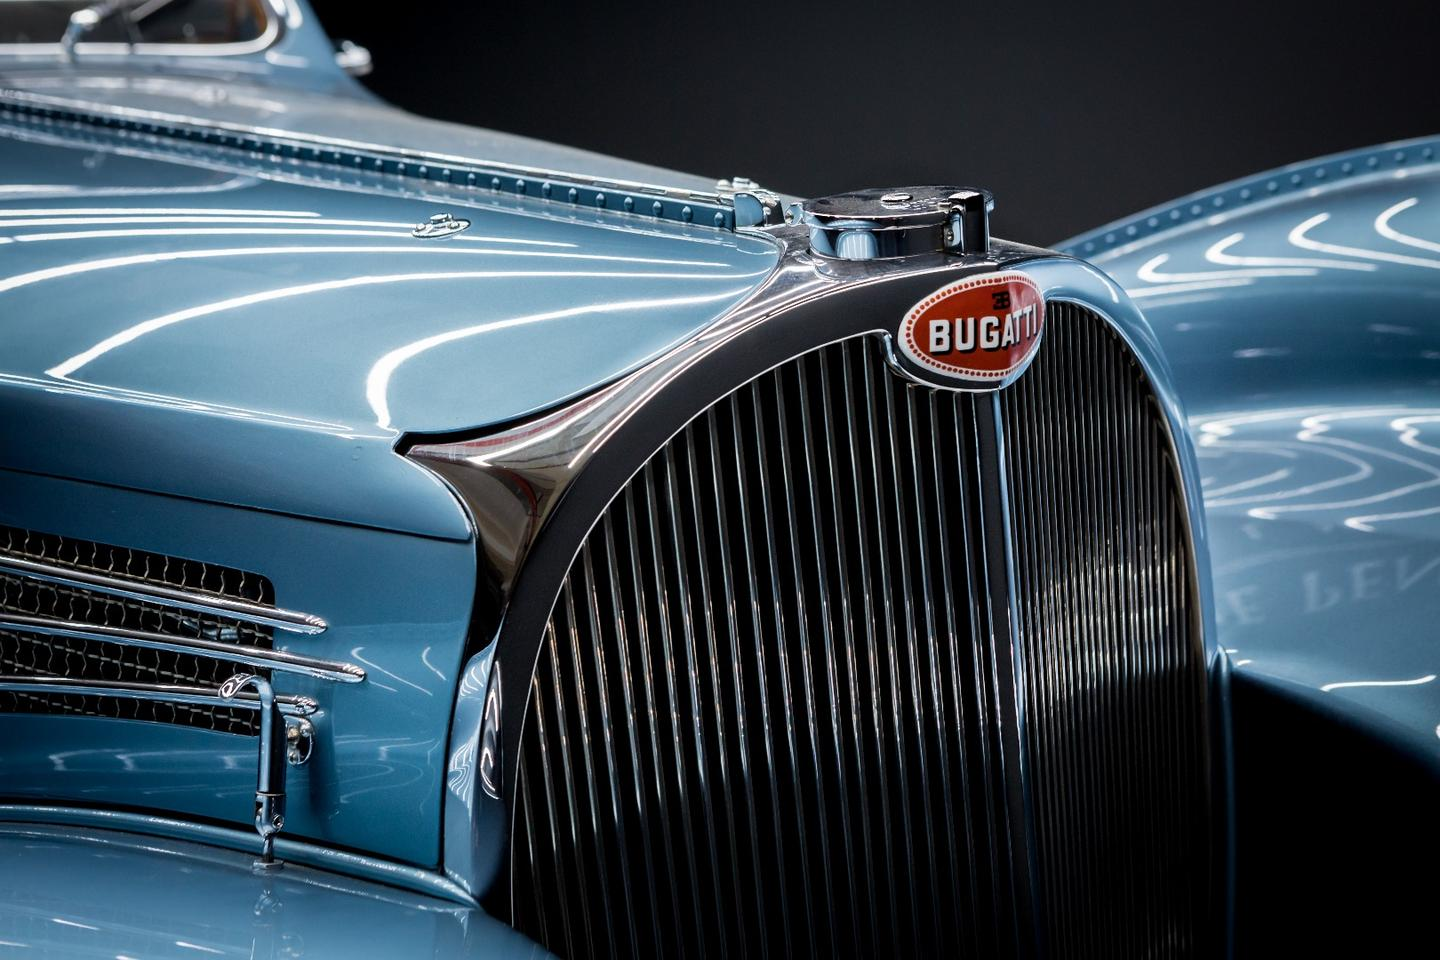 The exquisite lines of the 1936 Bugatti Type 57 SC Coupé Atlantic which took top honors in the 2017 Peninsula Classics Best of the Best award in Paris